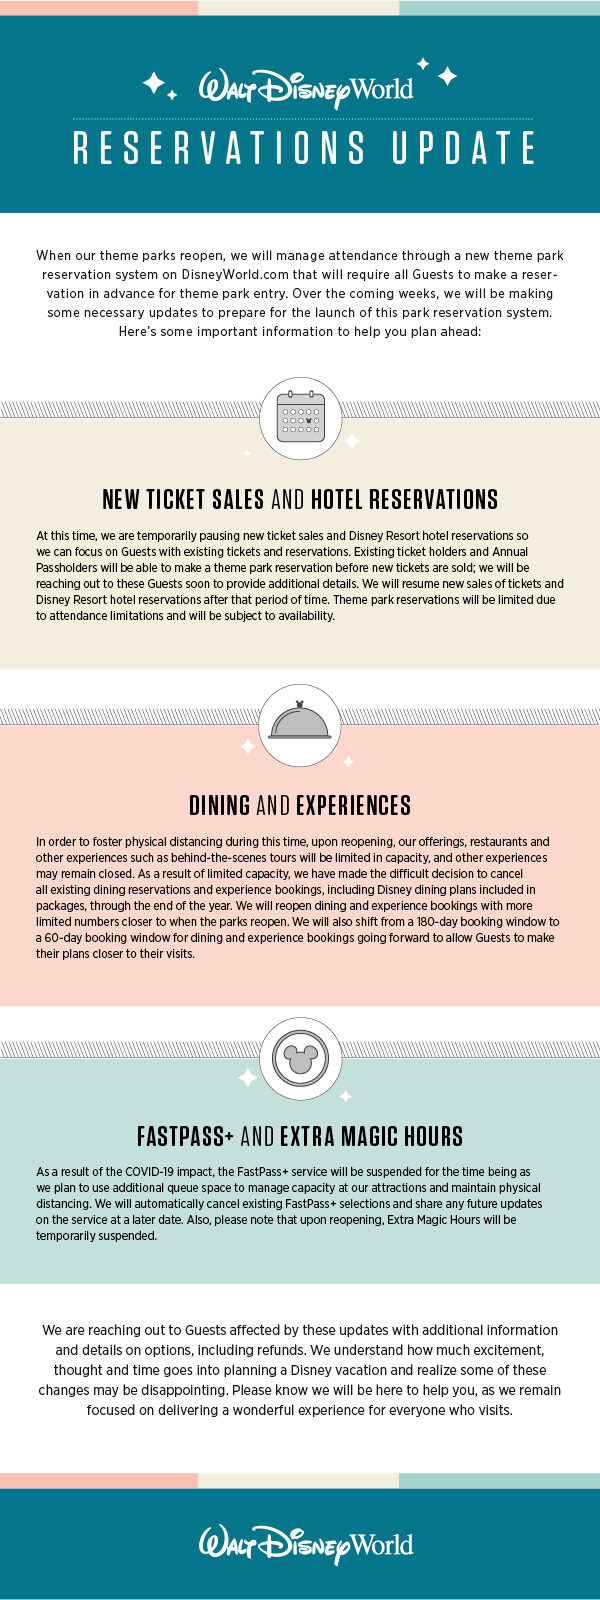 Walt Disney World Reservation Infographic